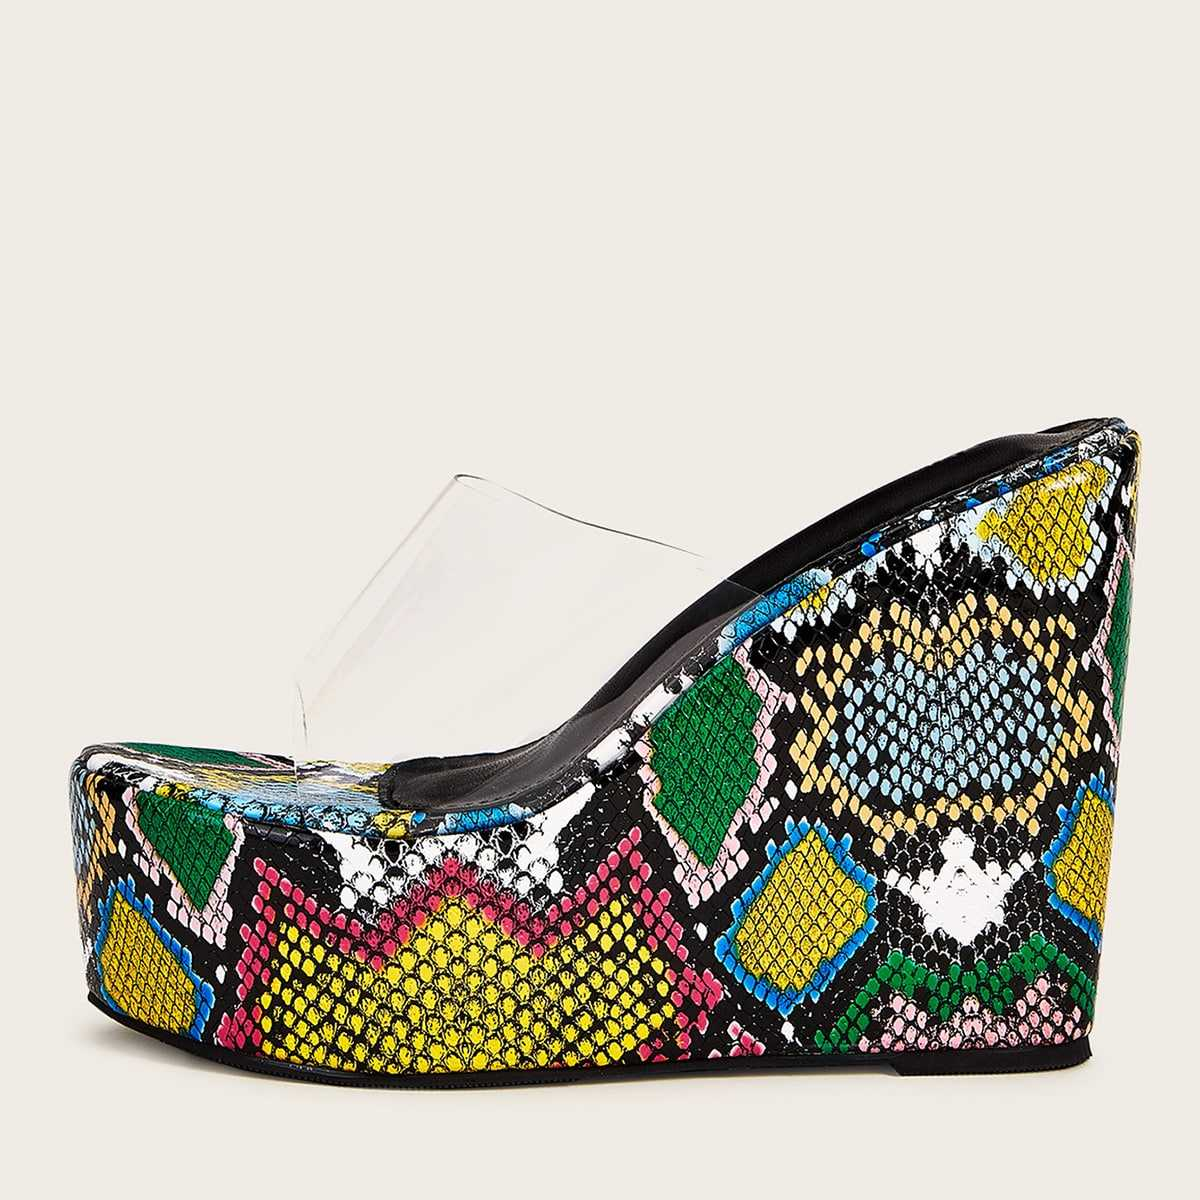 Clear Strap Snakeskin Print Wedges in Multicolor by ROMWE on GOOFASH